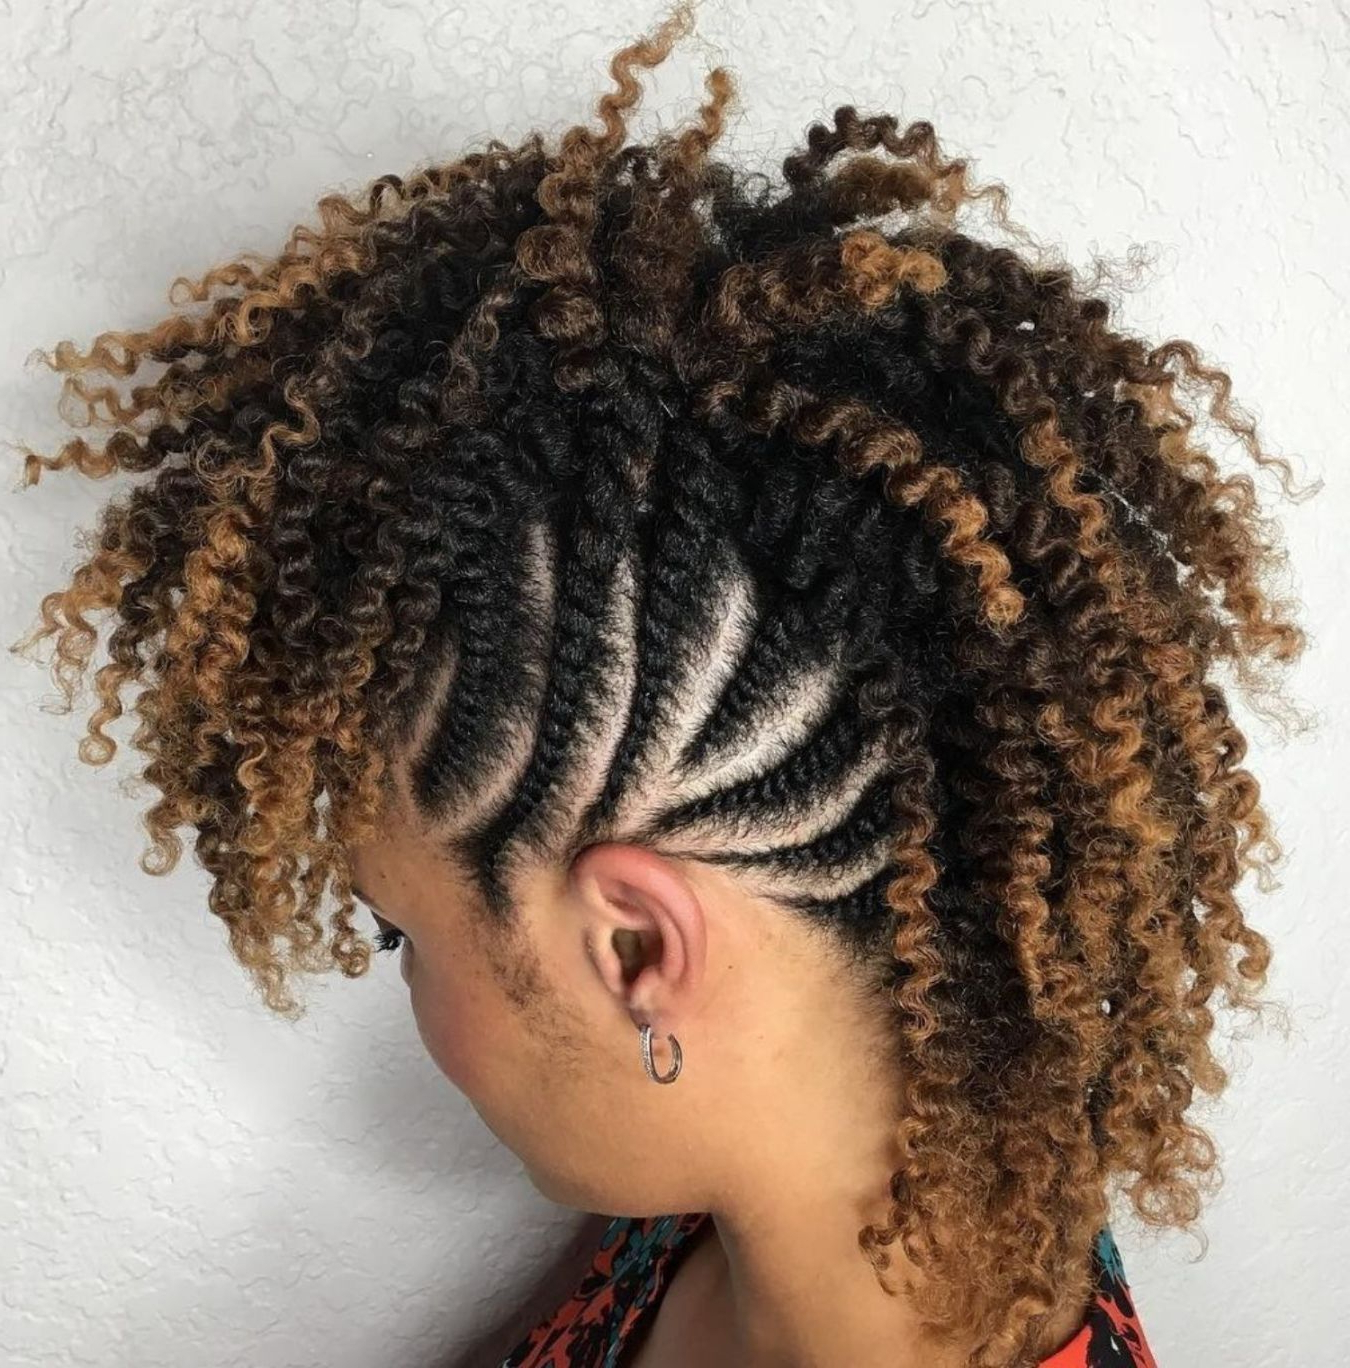 Most Popular Braided Frohawk Hairstyles For 70 Best Black Braided Hairstyles That Turn Heads (View 12 of 20)